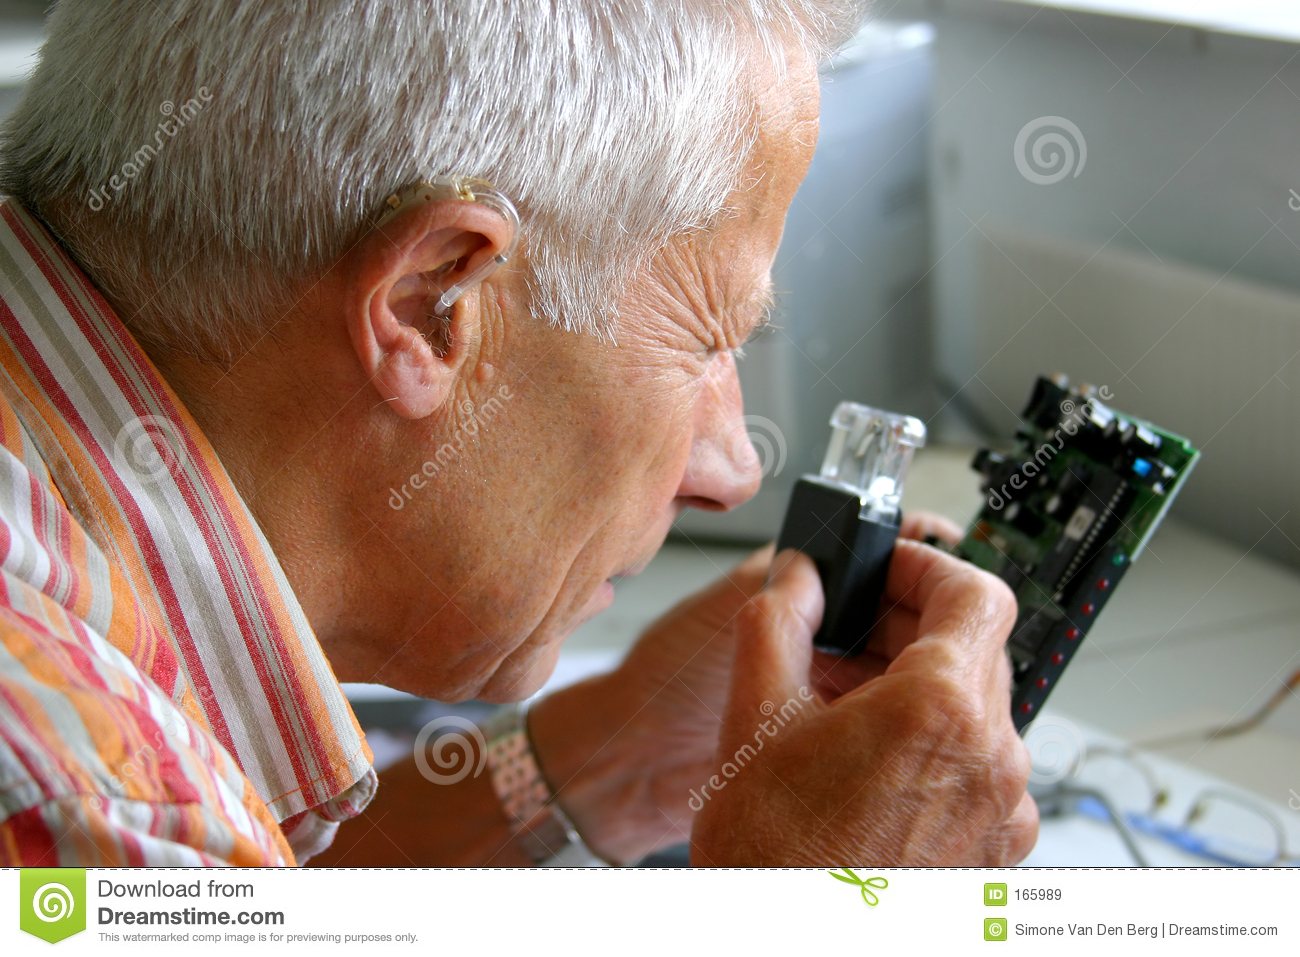 Older man trying to read the tiny letters on printboard